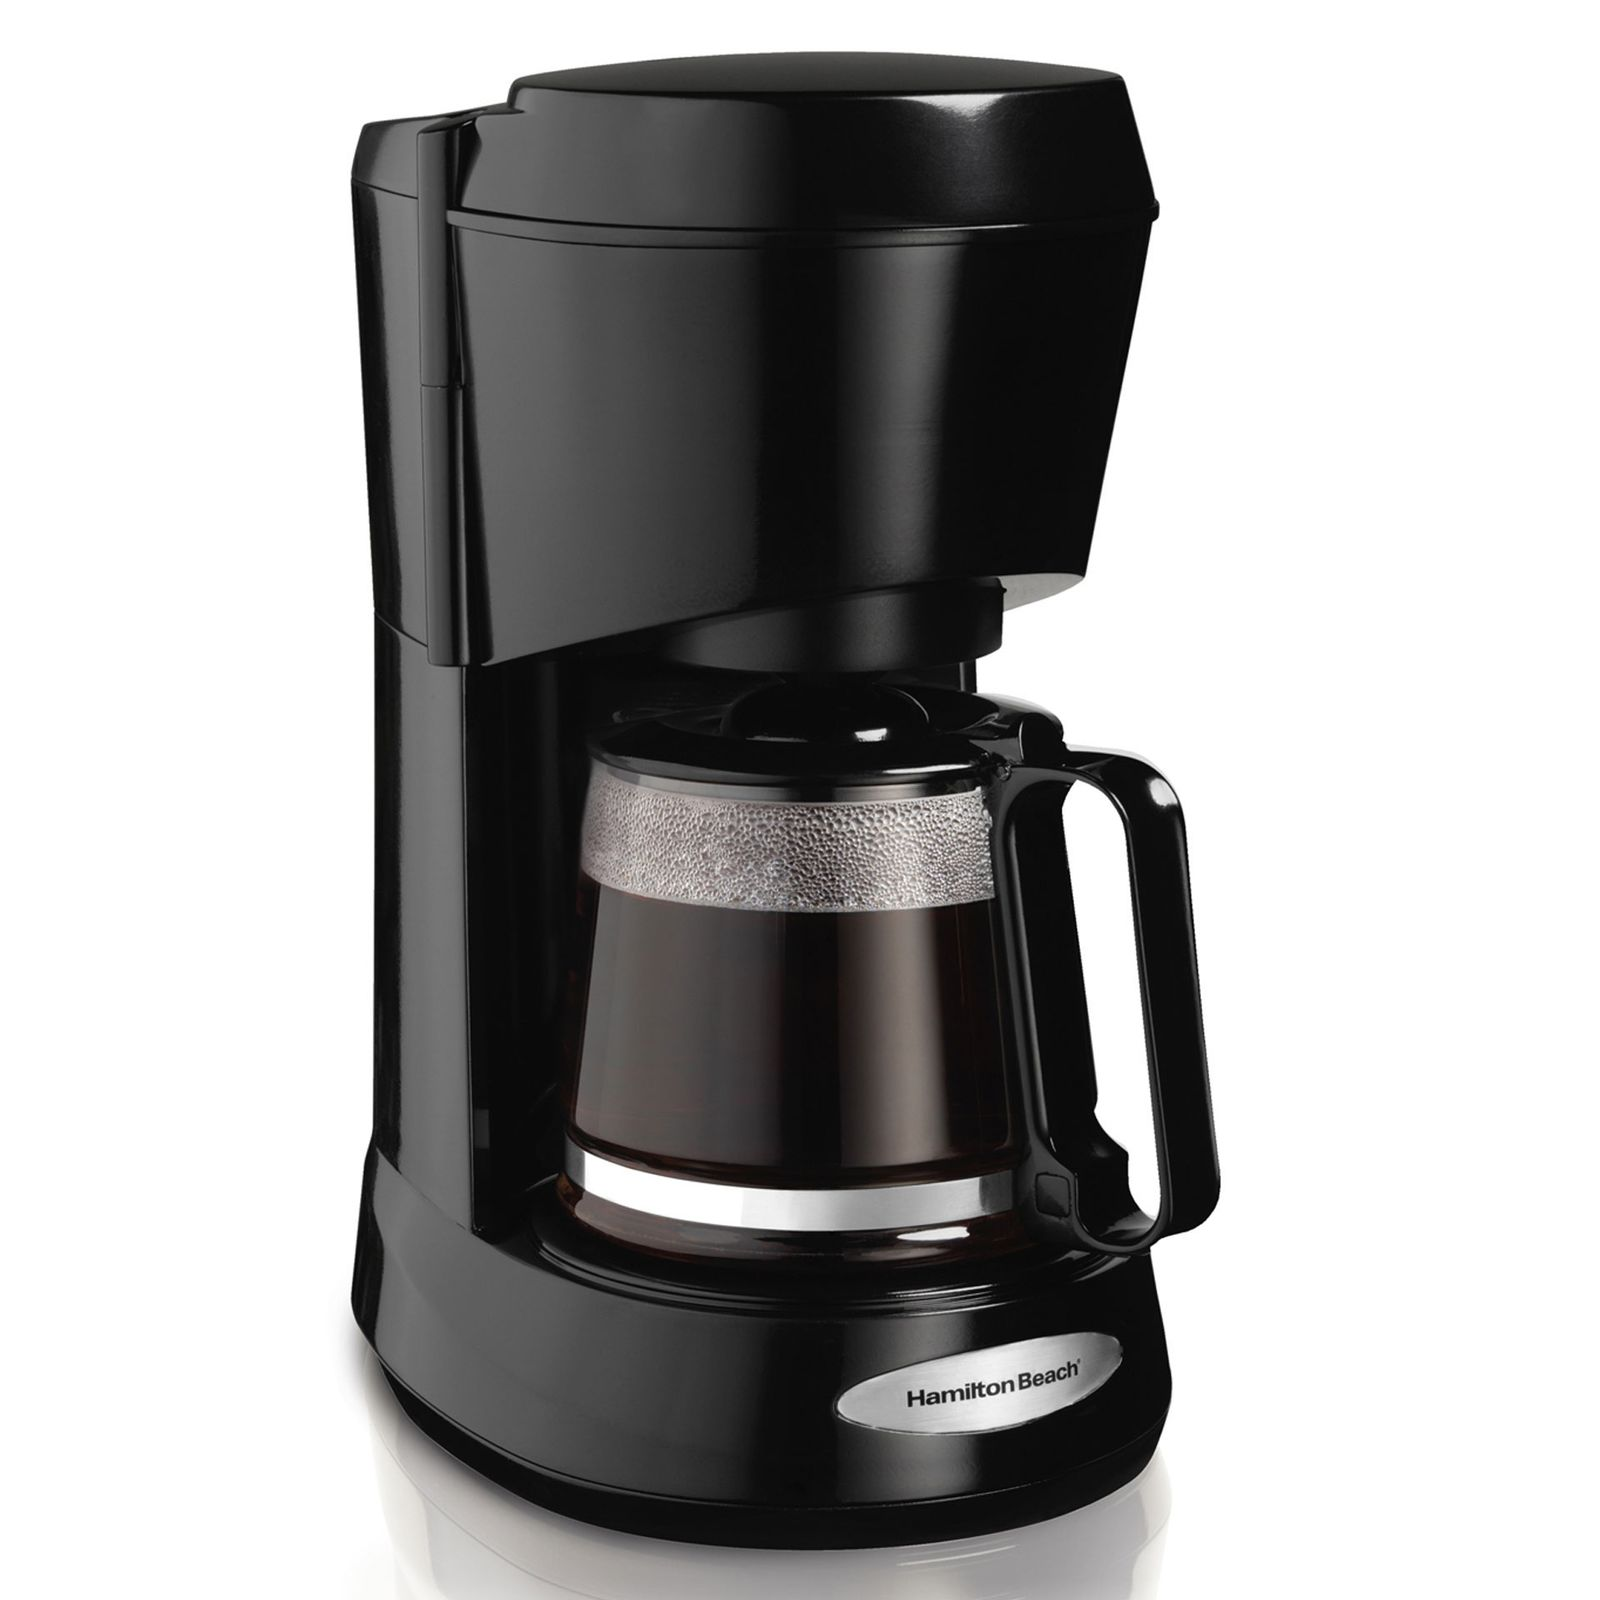 Hamilton beach 5 cup coffee maker 48136 review Coffee maker brands